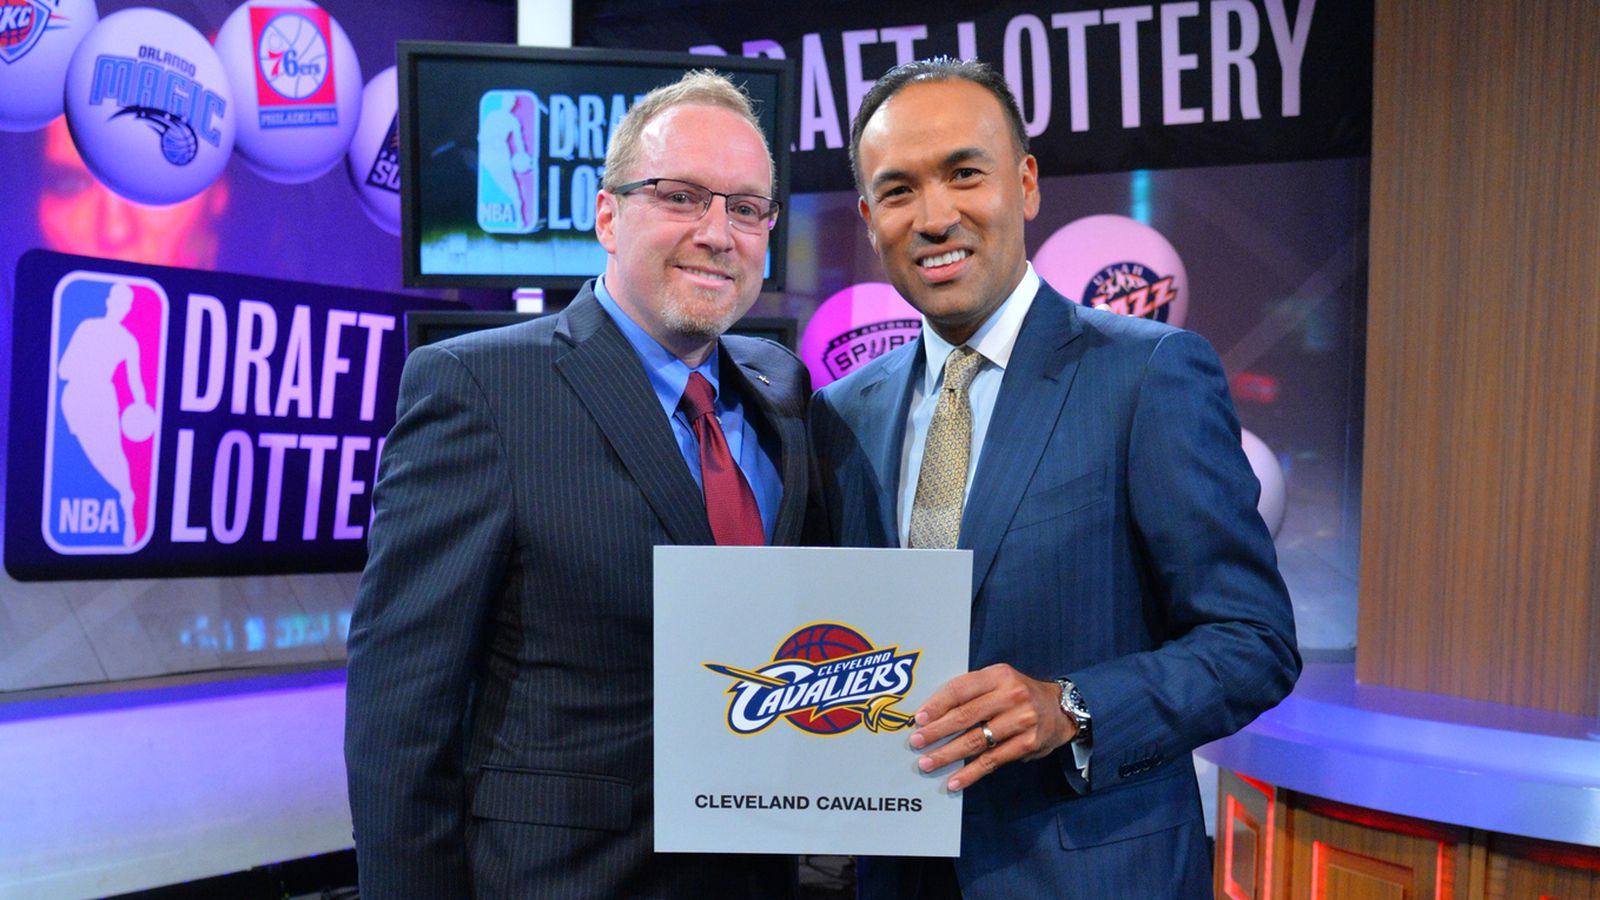 Nba draft lottery date in Perth